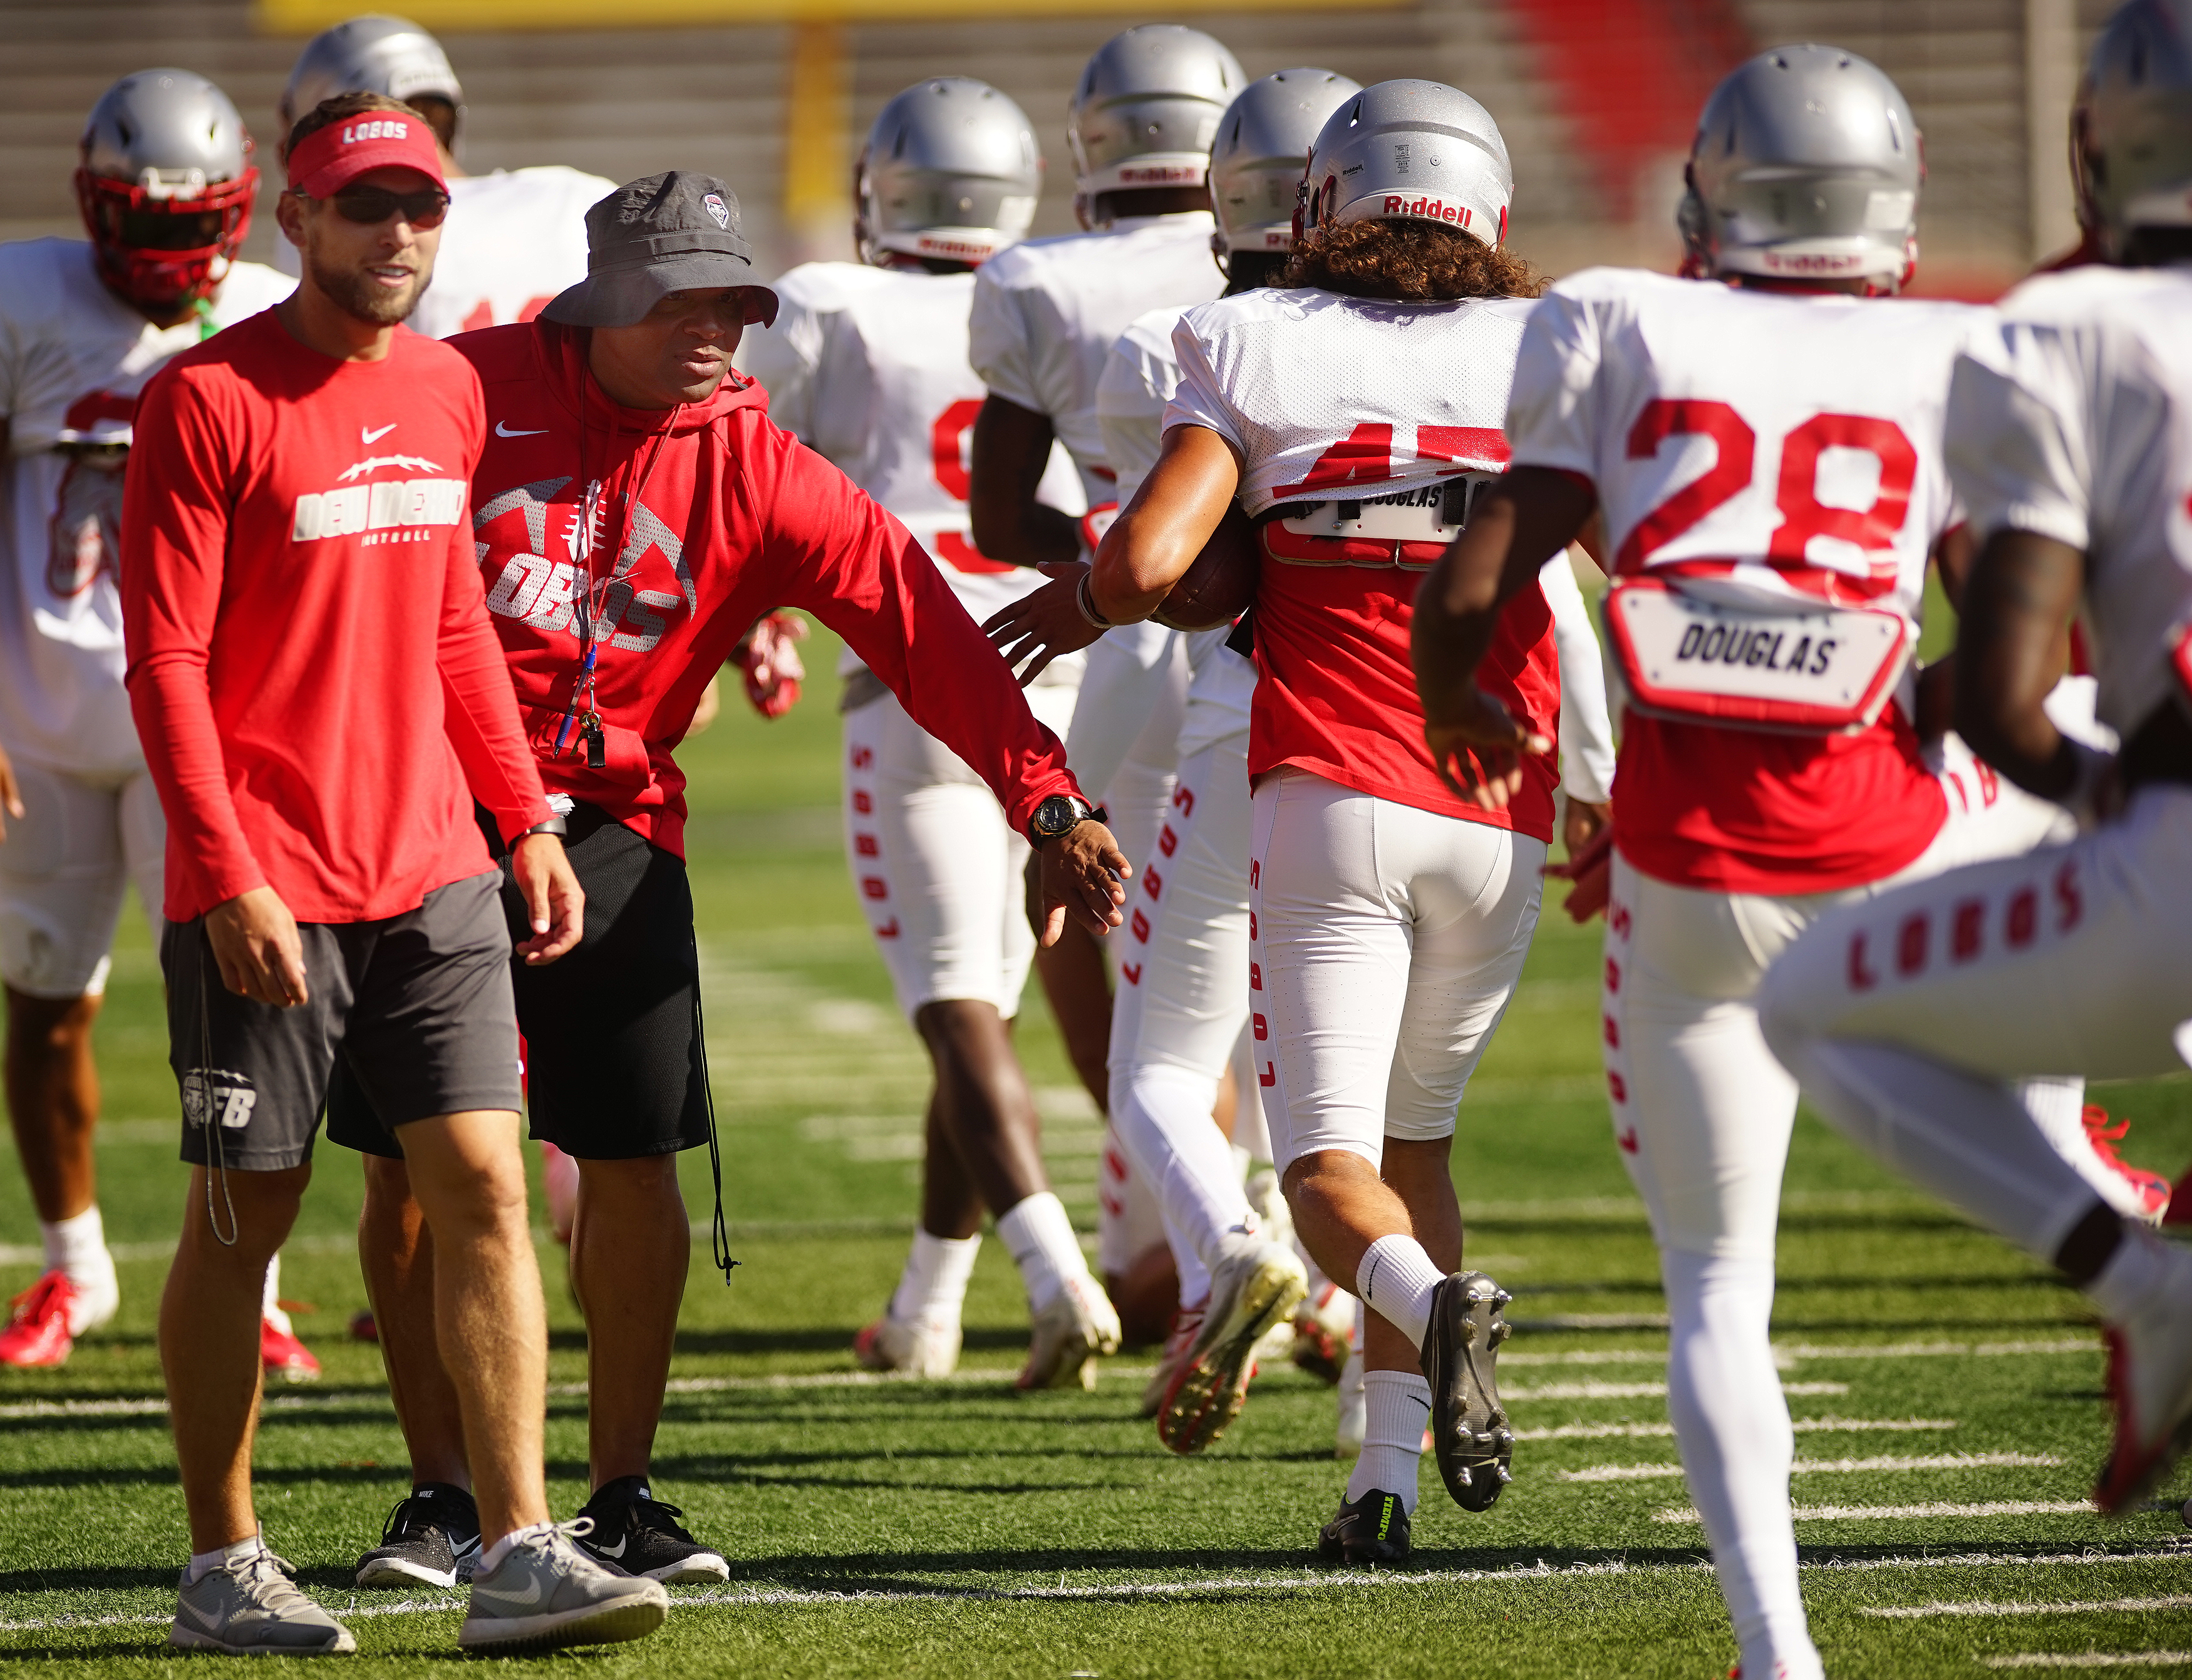 Lobo football staff's status also is up in the air